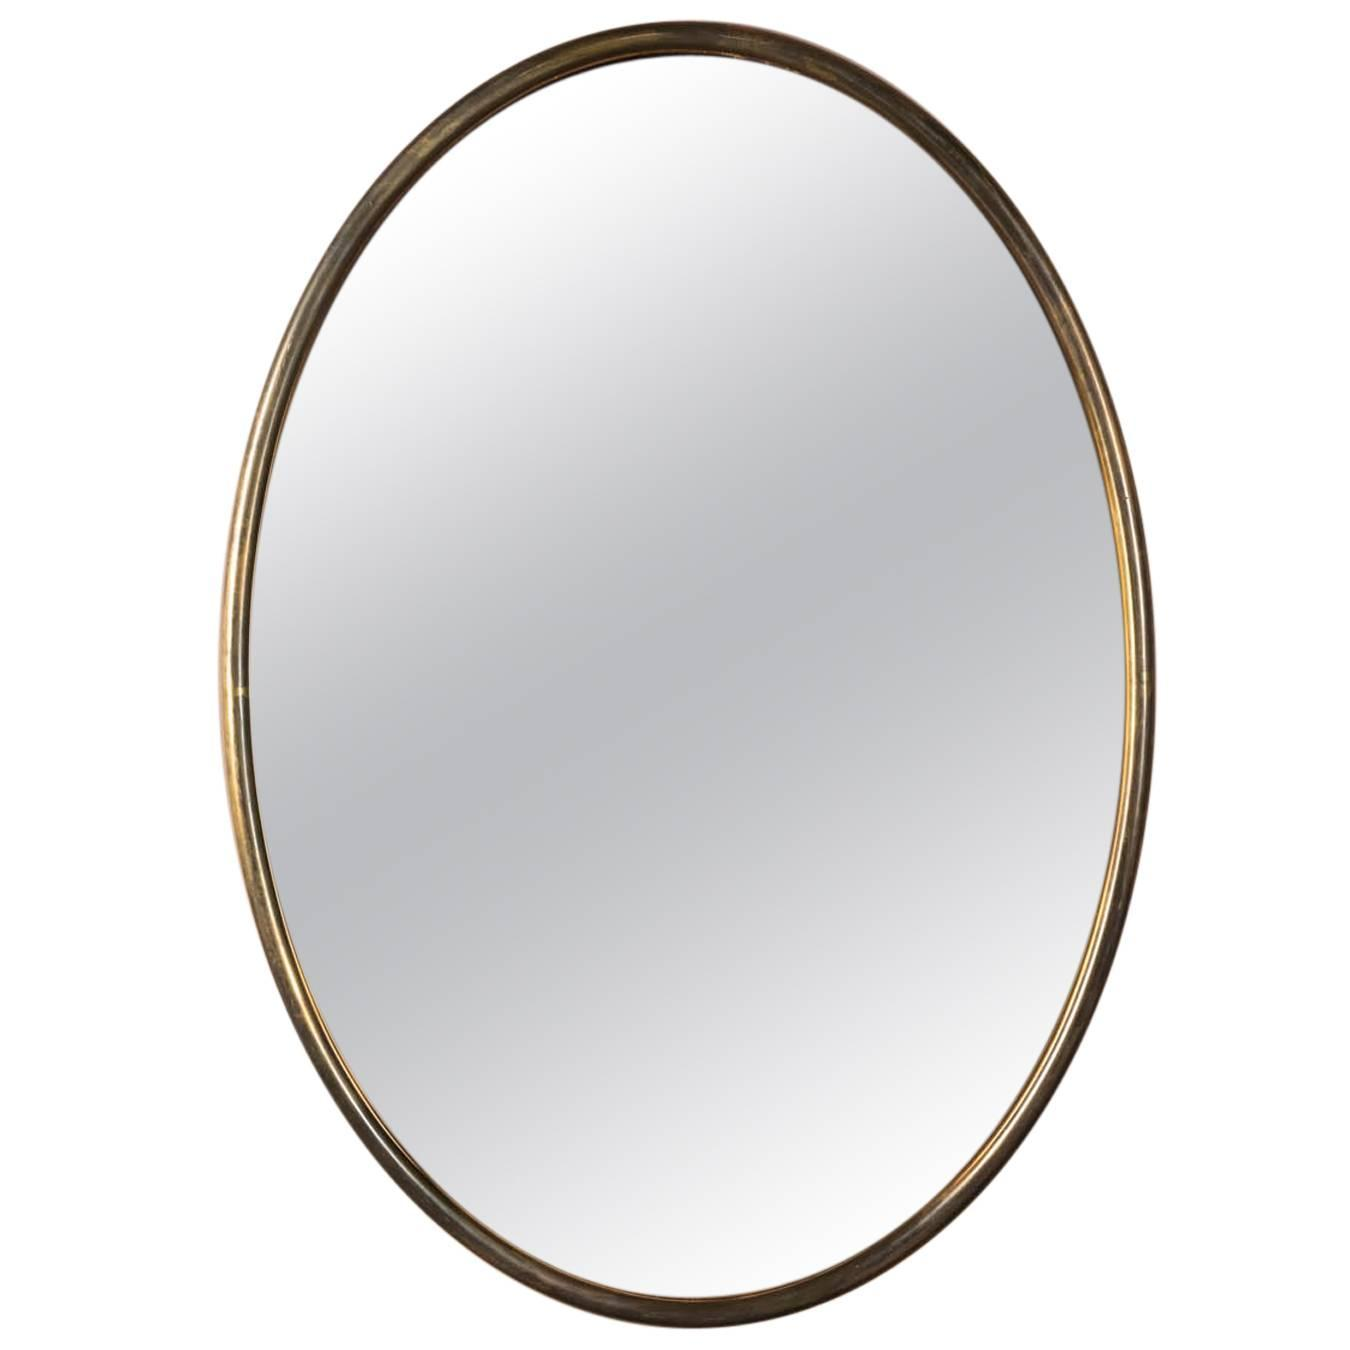 Italian oval brass mirror with copper tinted glass at 1stdibs for Mirror of mirror